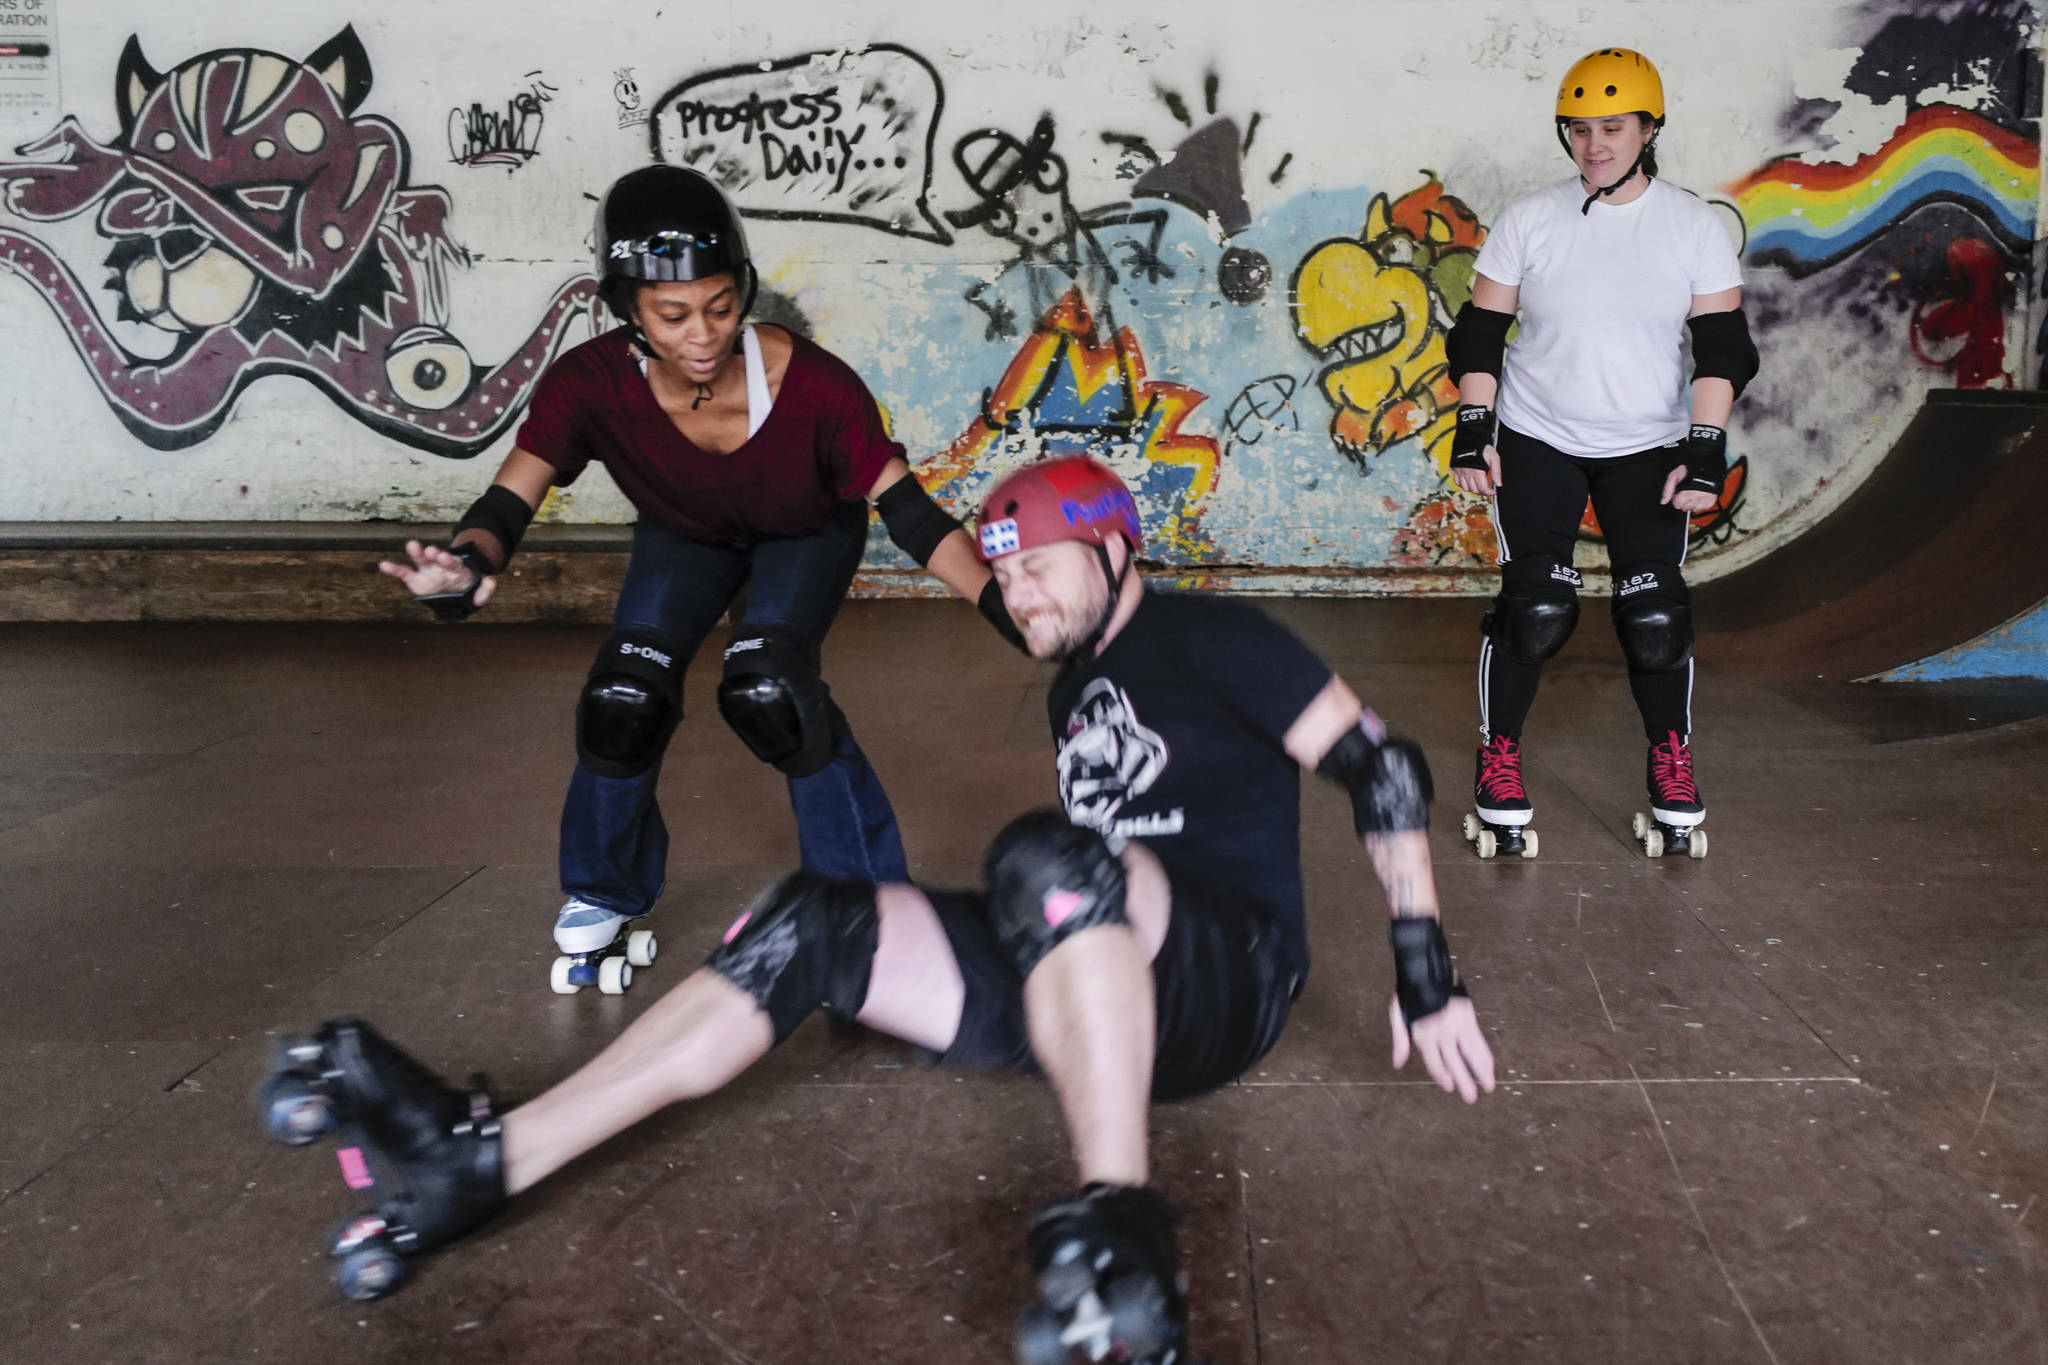 Empire reporter Michael S. Lockett takes a fall while being taught to rollerskate by Jennifer Gross, left, and Shabadrang Khalsa at the Pipeline Skate Park on Friday, Oct. 11, 2019. (Michael Penn | Juneau Empire)